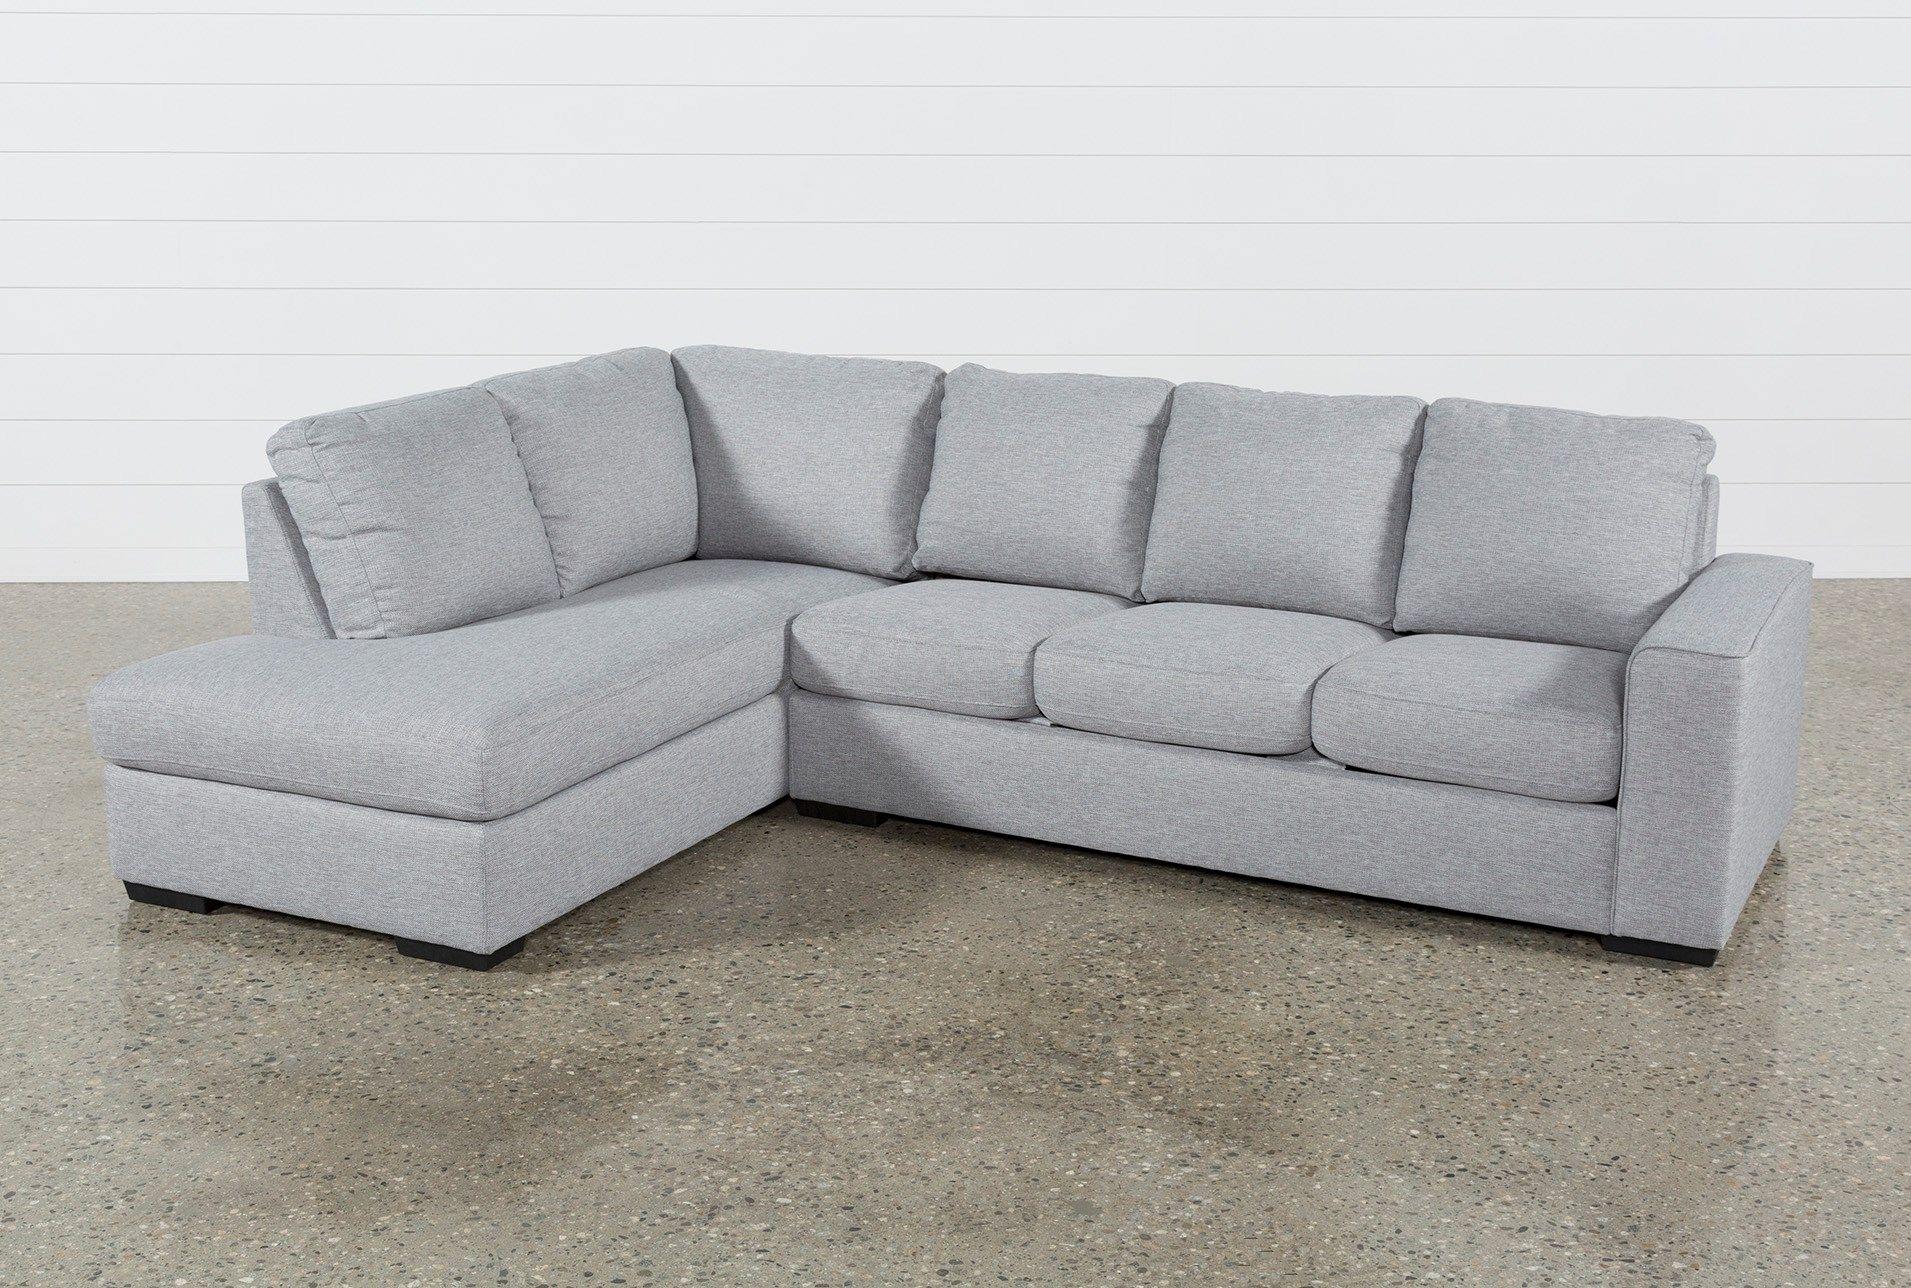 Lucy Grey 2 Piece Sectional W/laf Chaise | Tx House | Pinterest Regarding Aquarius Dark Grey 2 Piece Sectionals With Raf Chaise (Image 11 of 25)